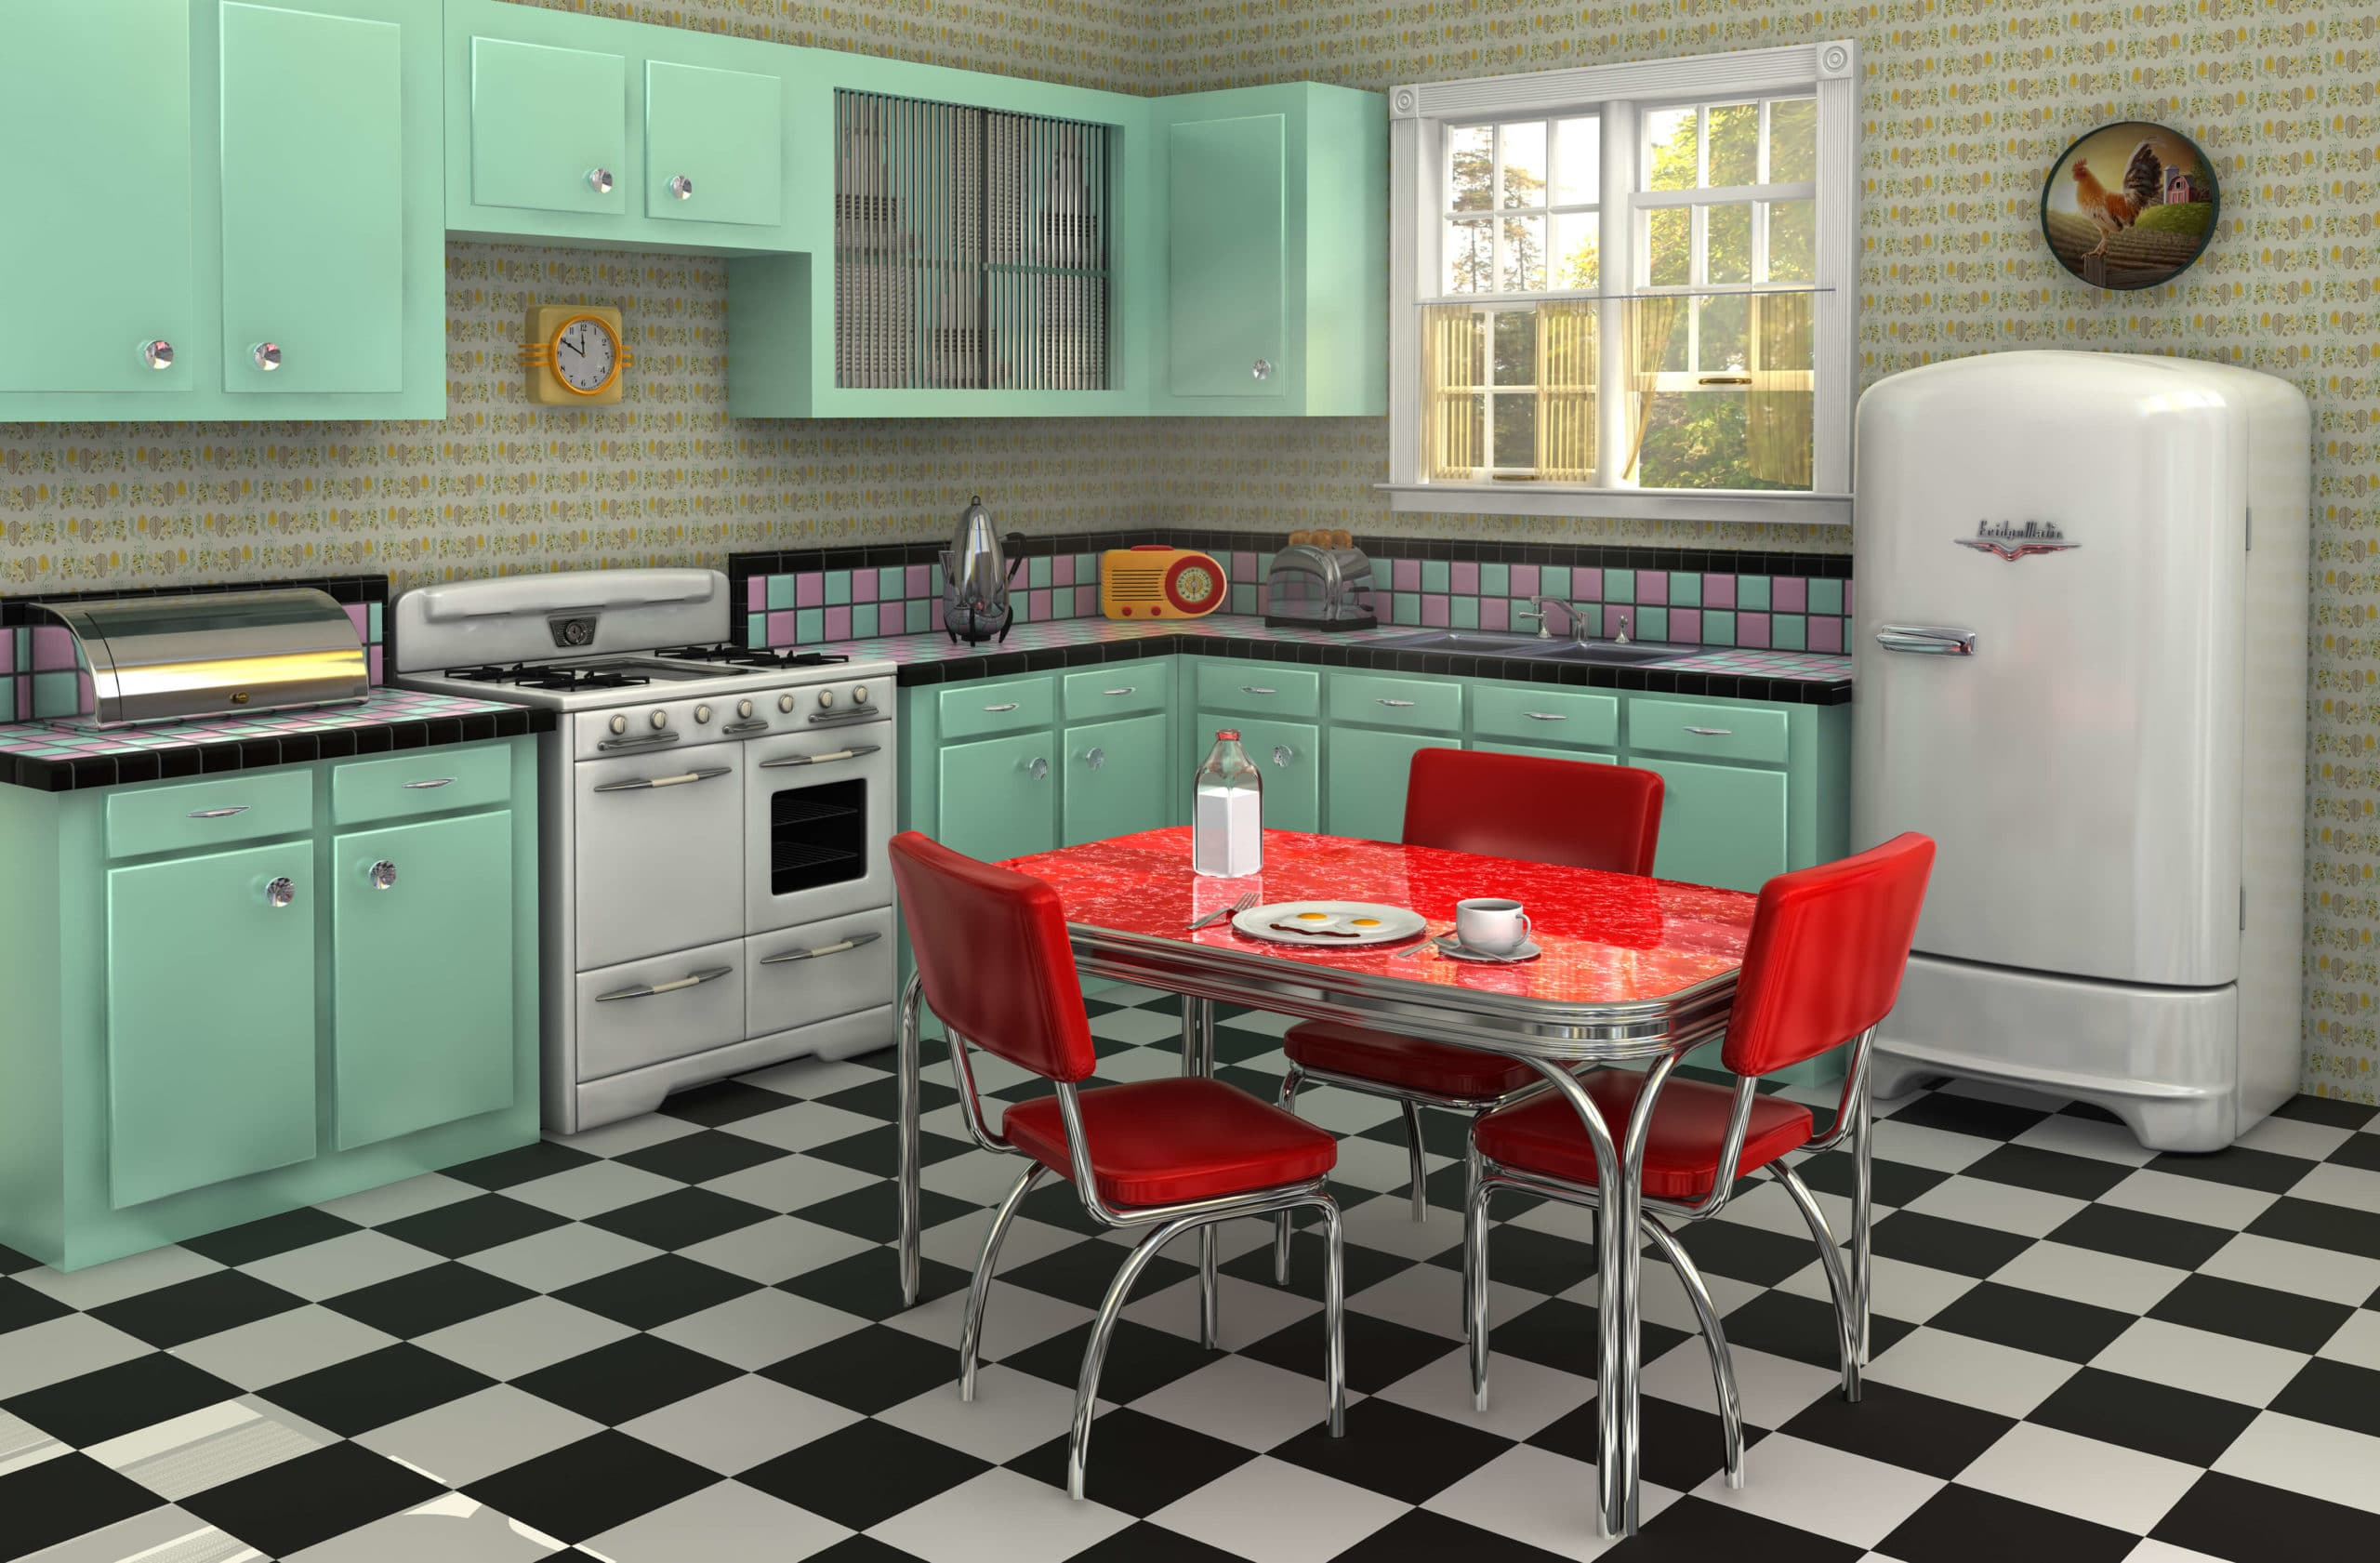 retro 50s kitchen with bright laminate countertops